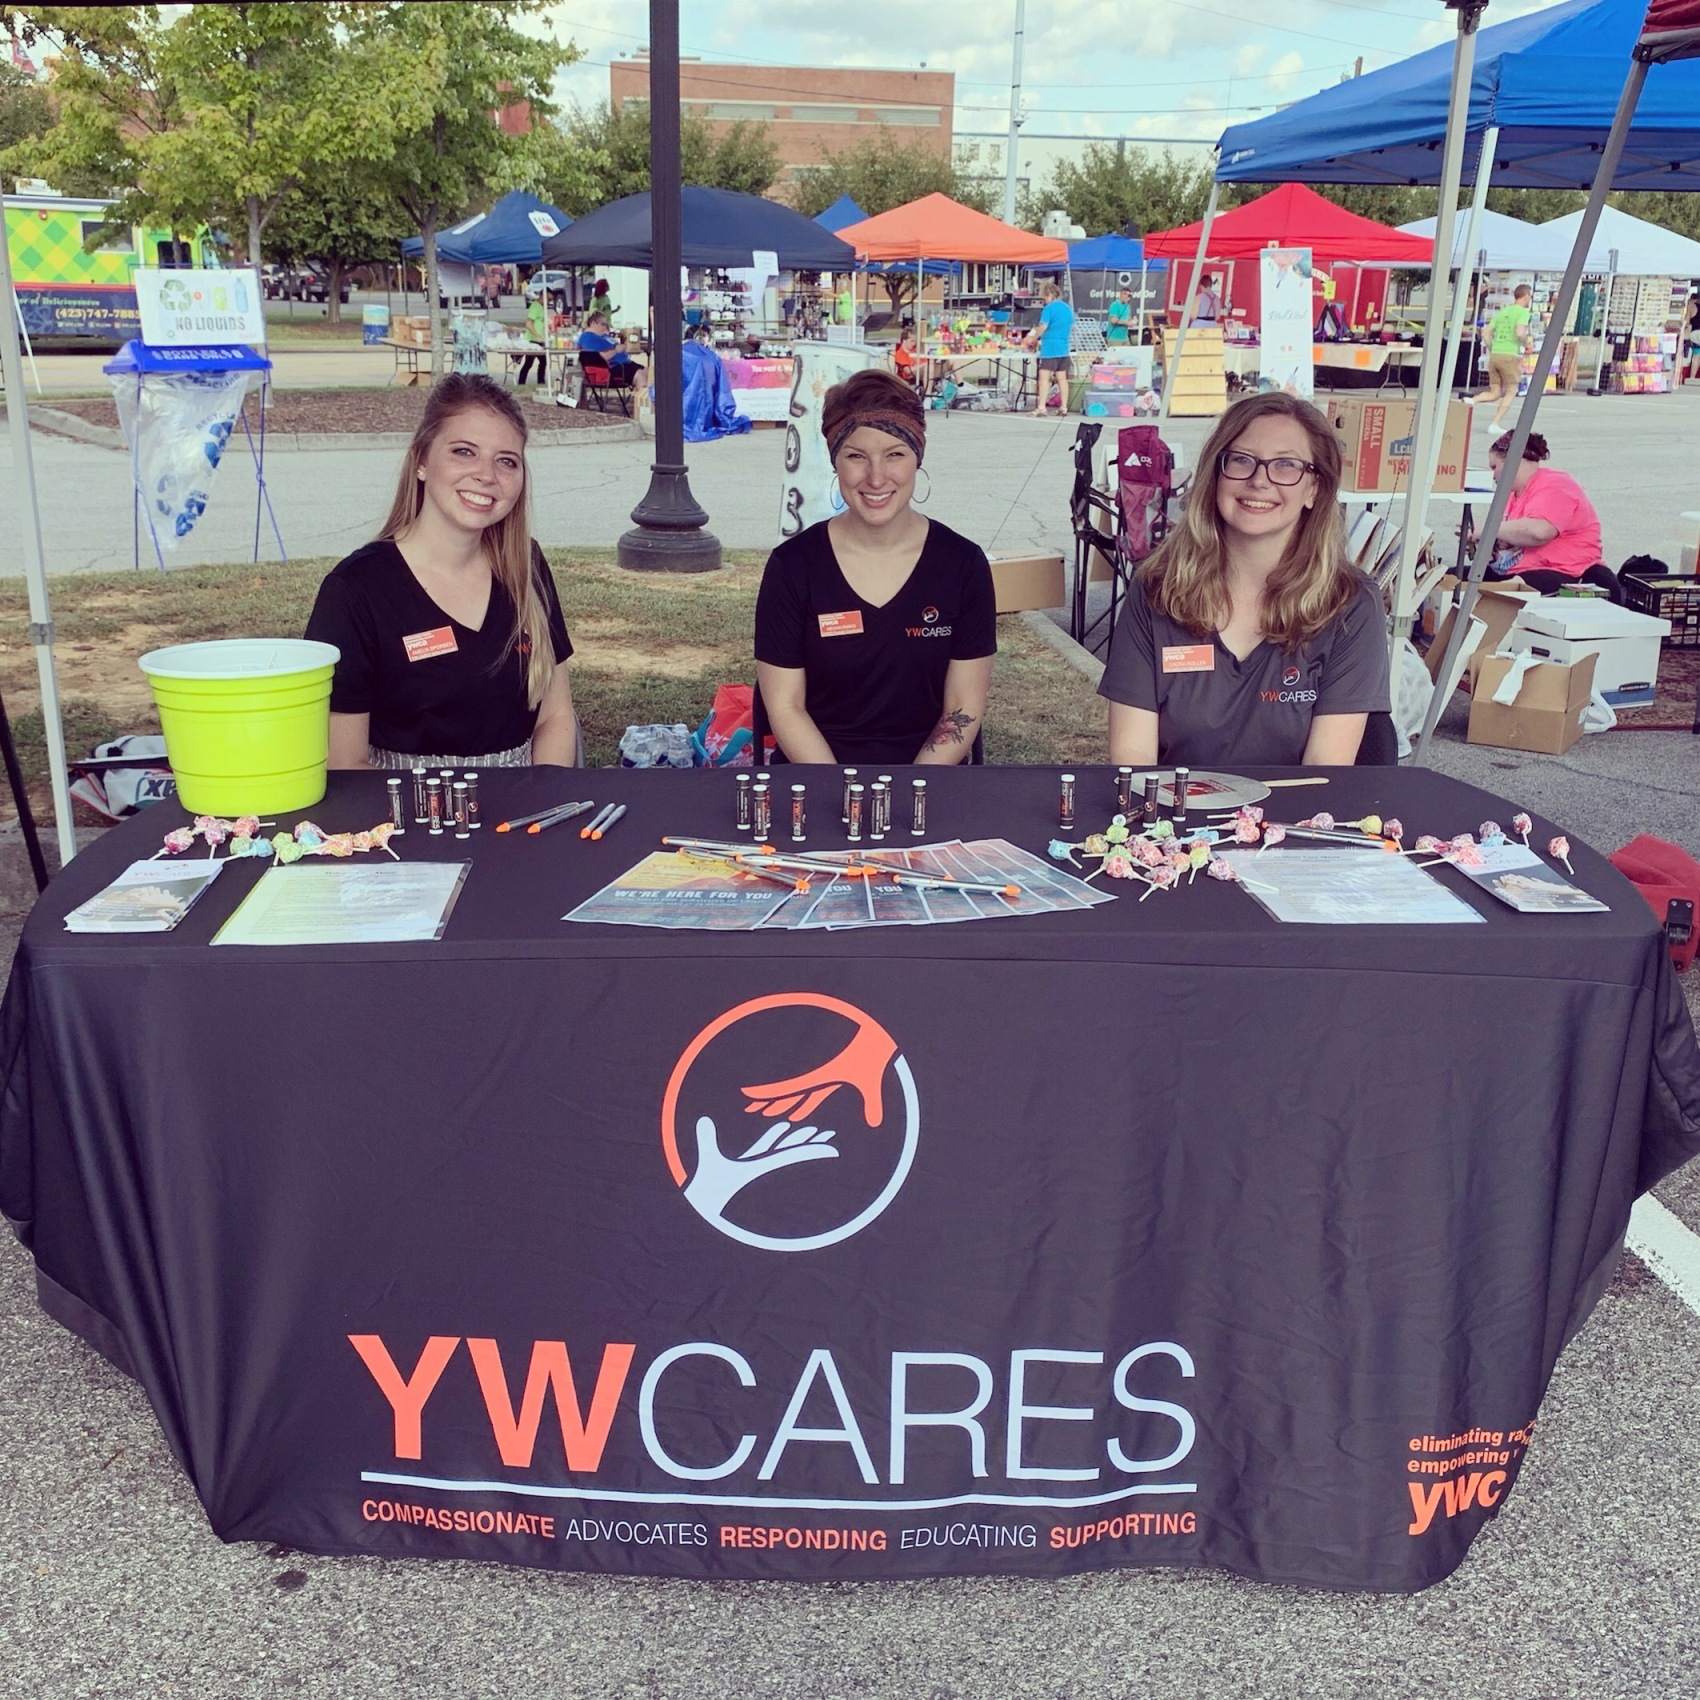 YWCARES for webpage